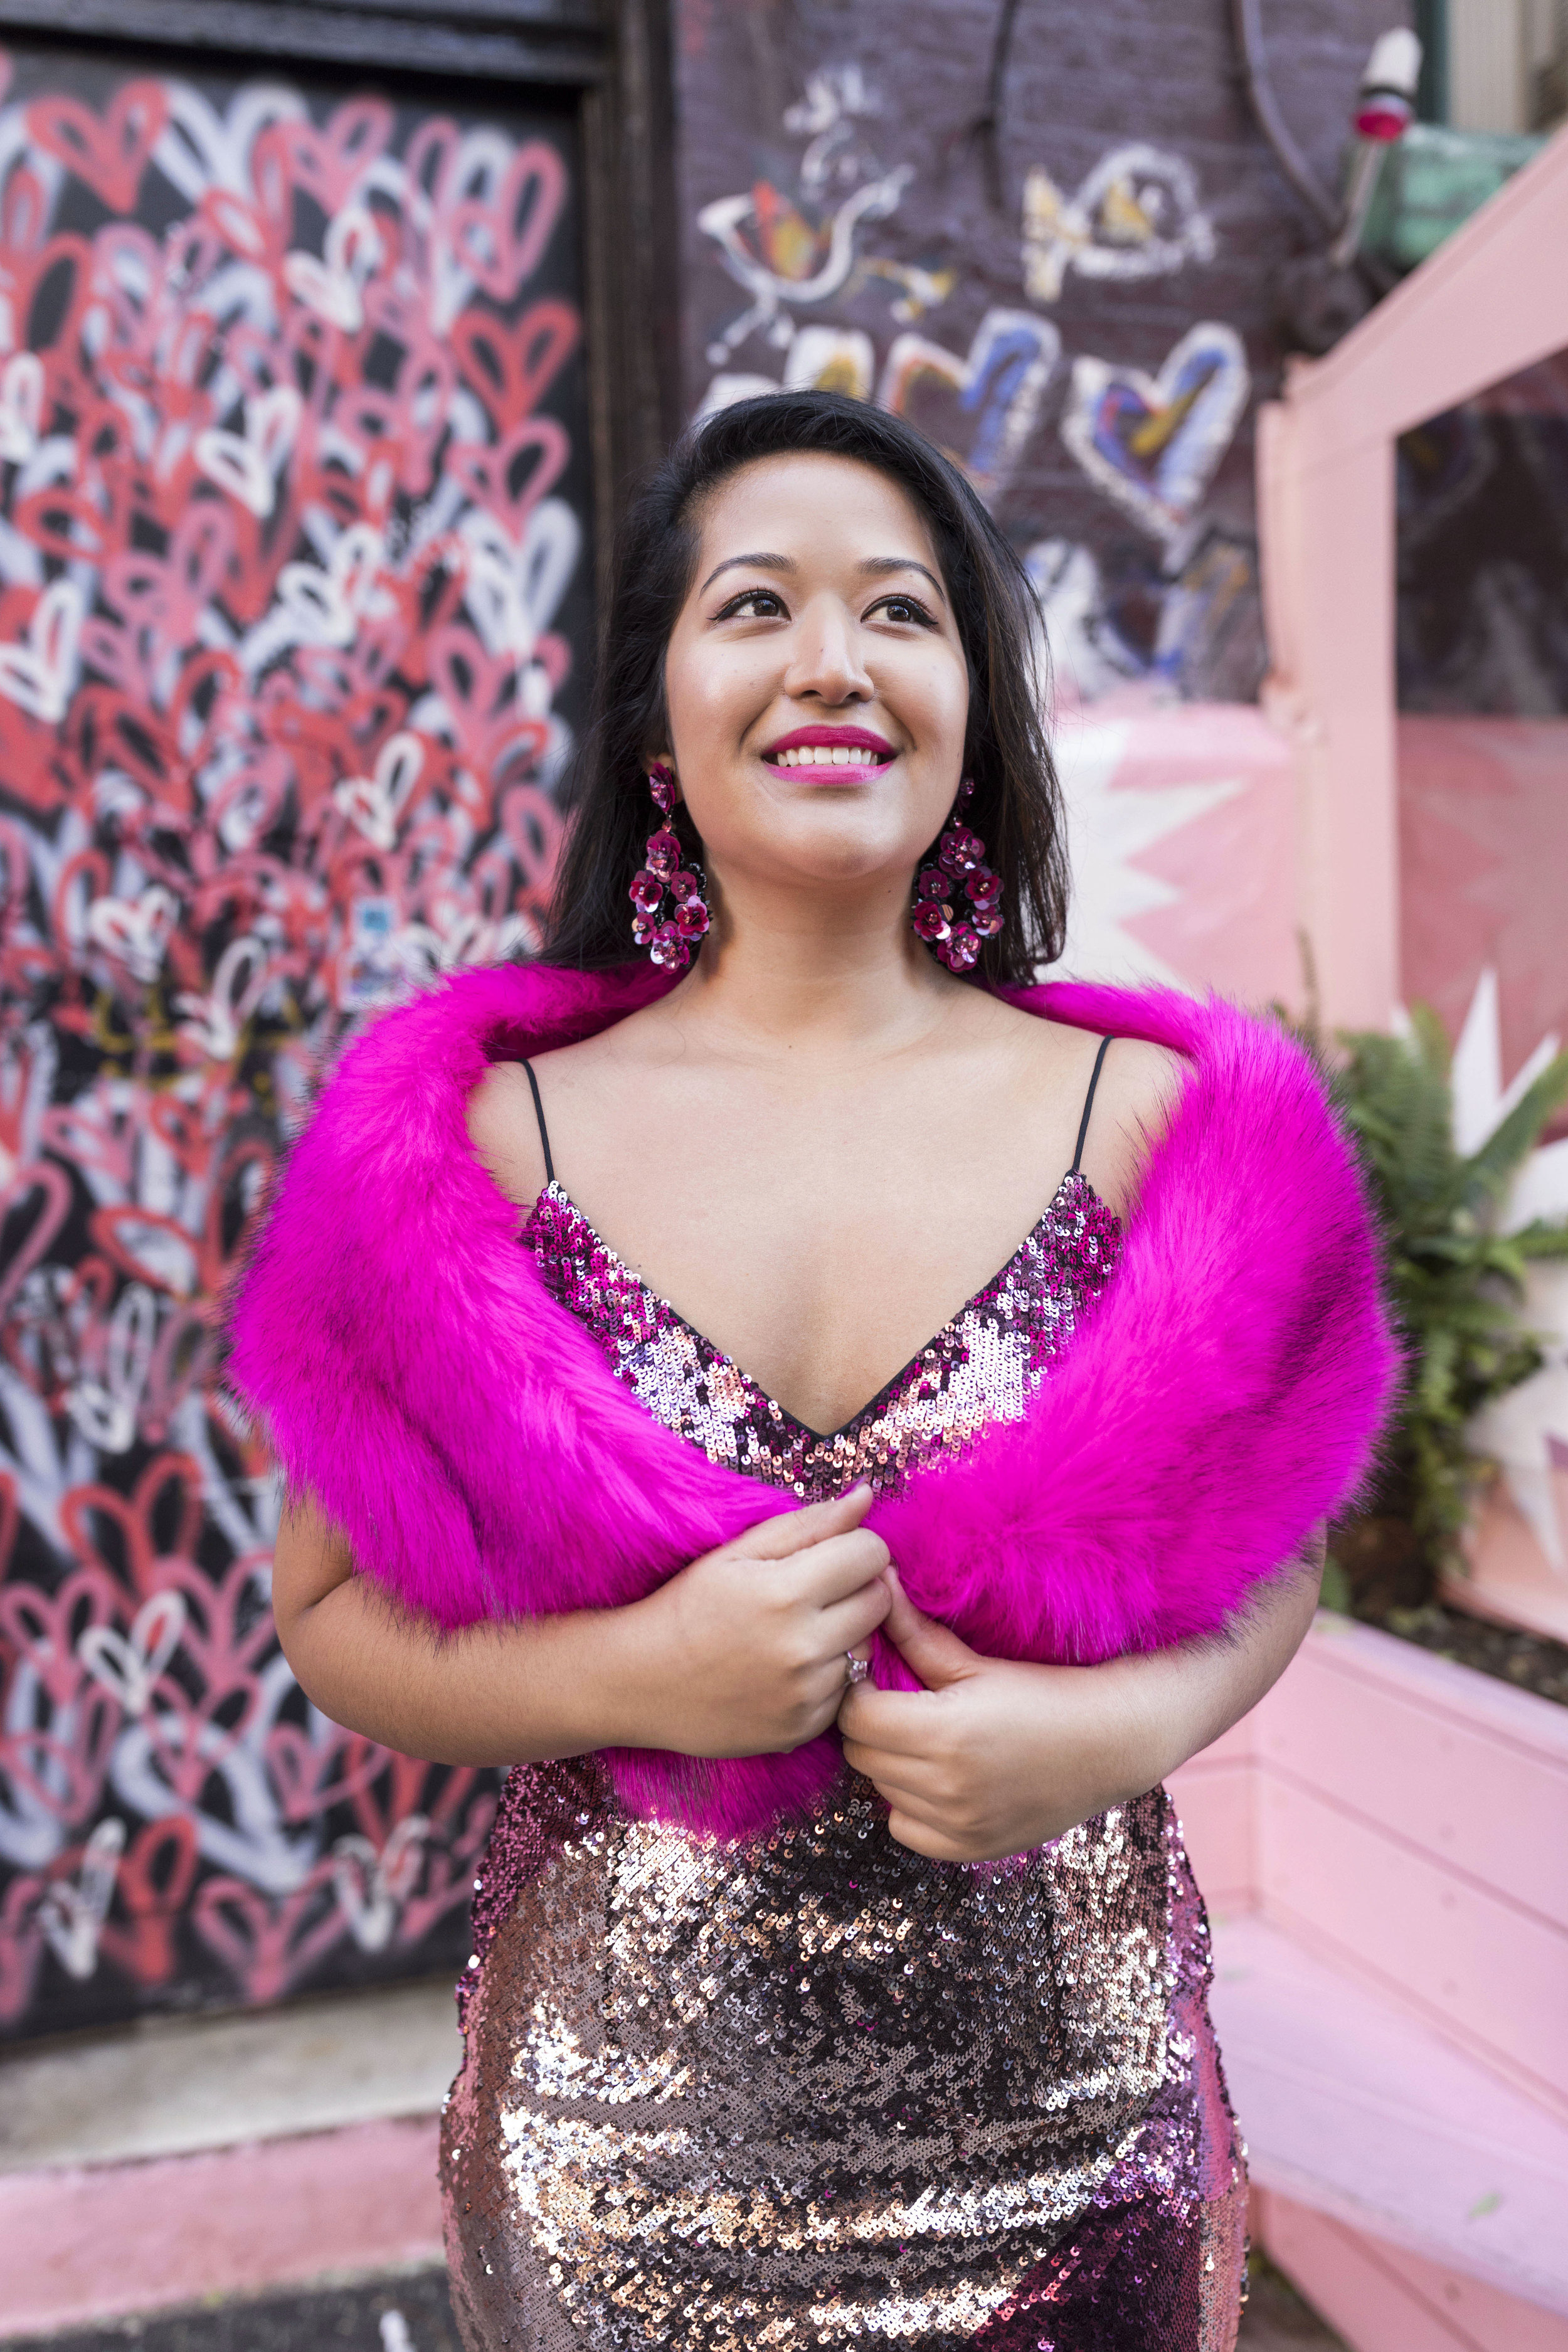 Krity S x New Years Eve Outfit x Aidan Mattox Color Block Pink Sequin Short Dress with Forever 21 Faux Fur Scarf 11.jpg